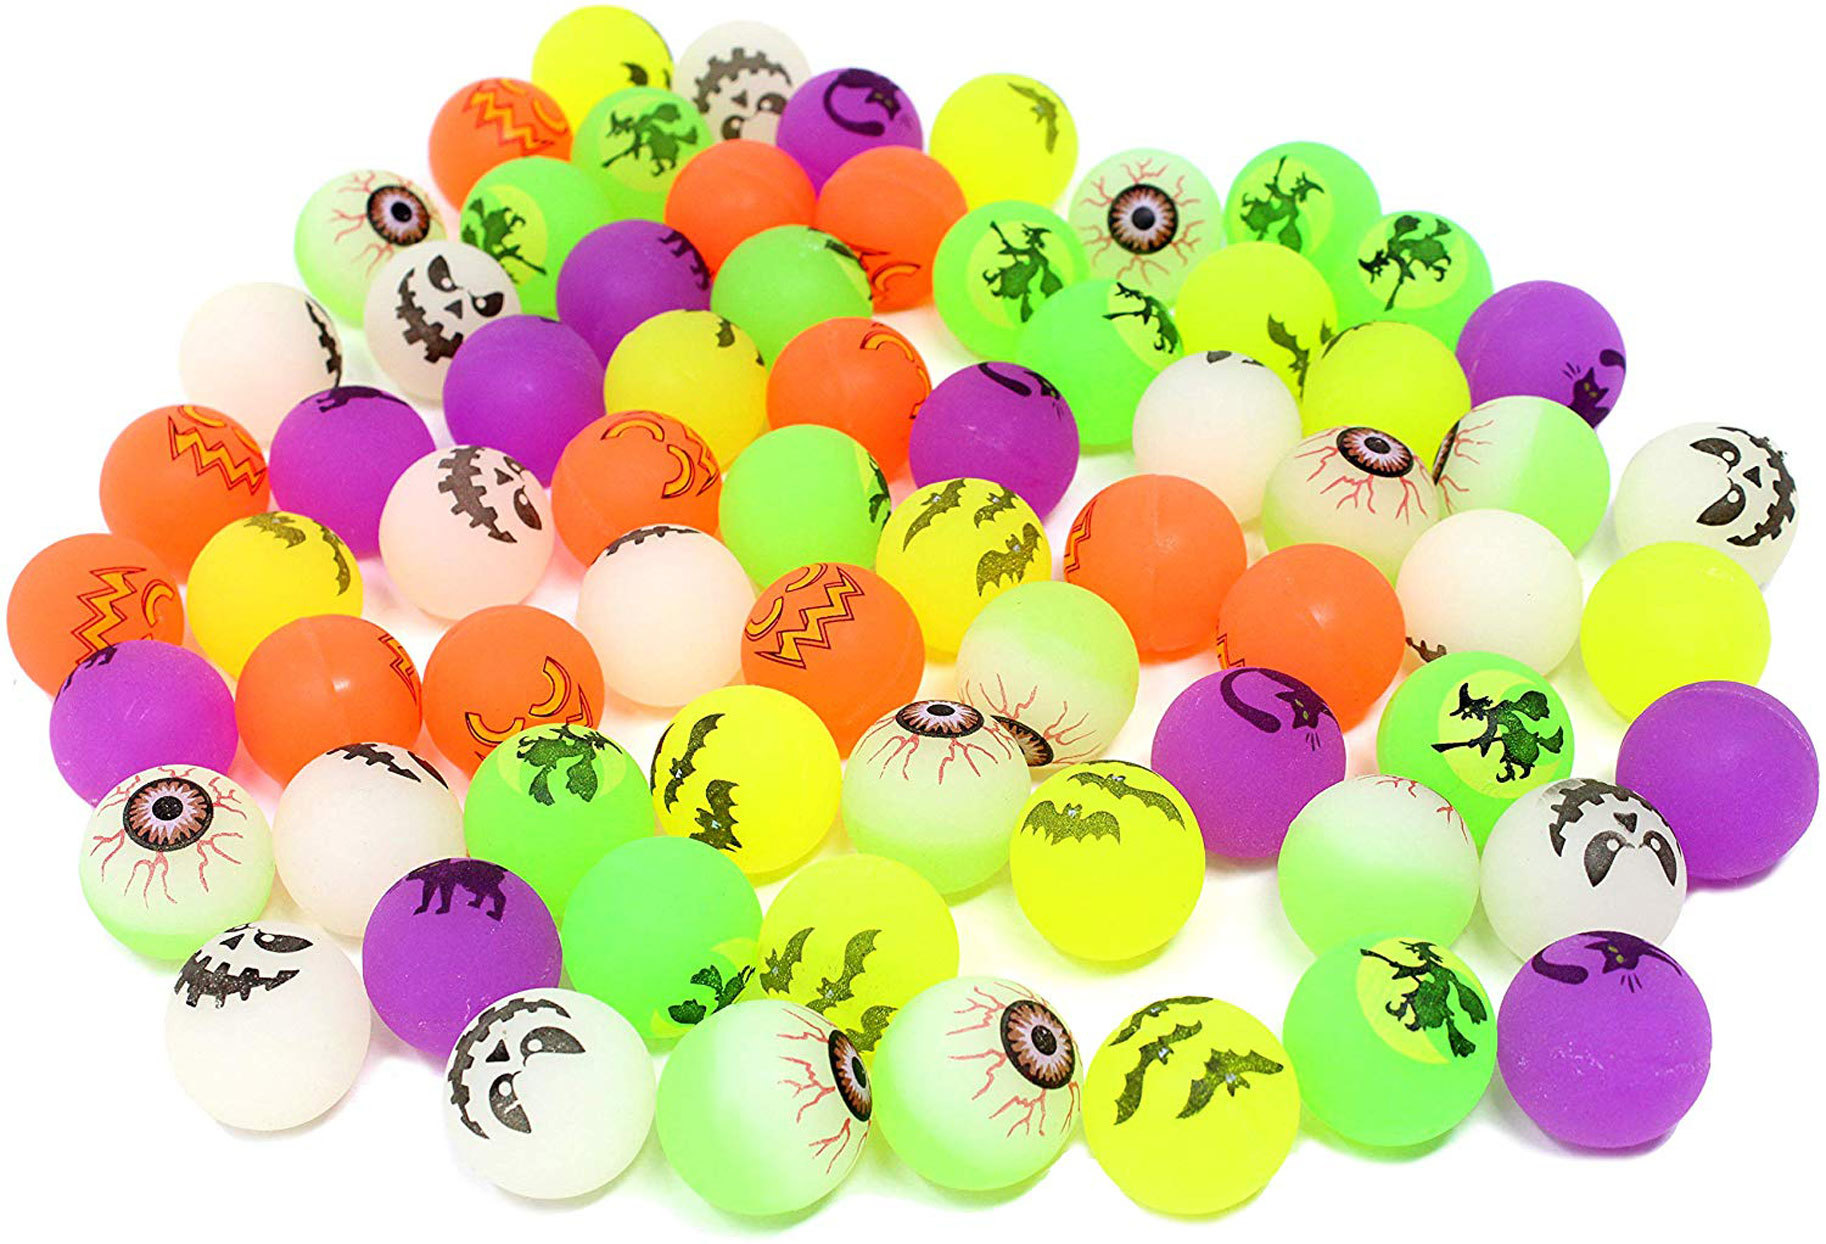 bouncy balls of various colors and spooky designs